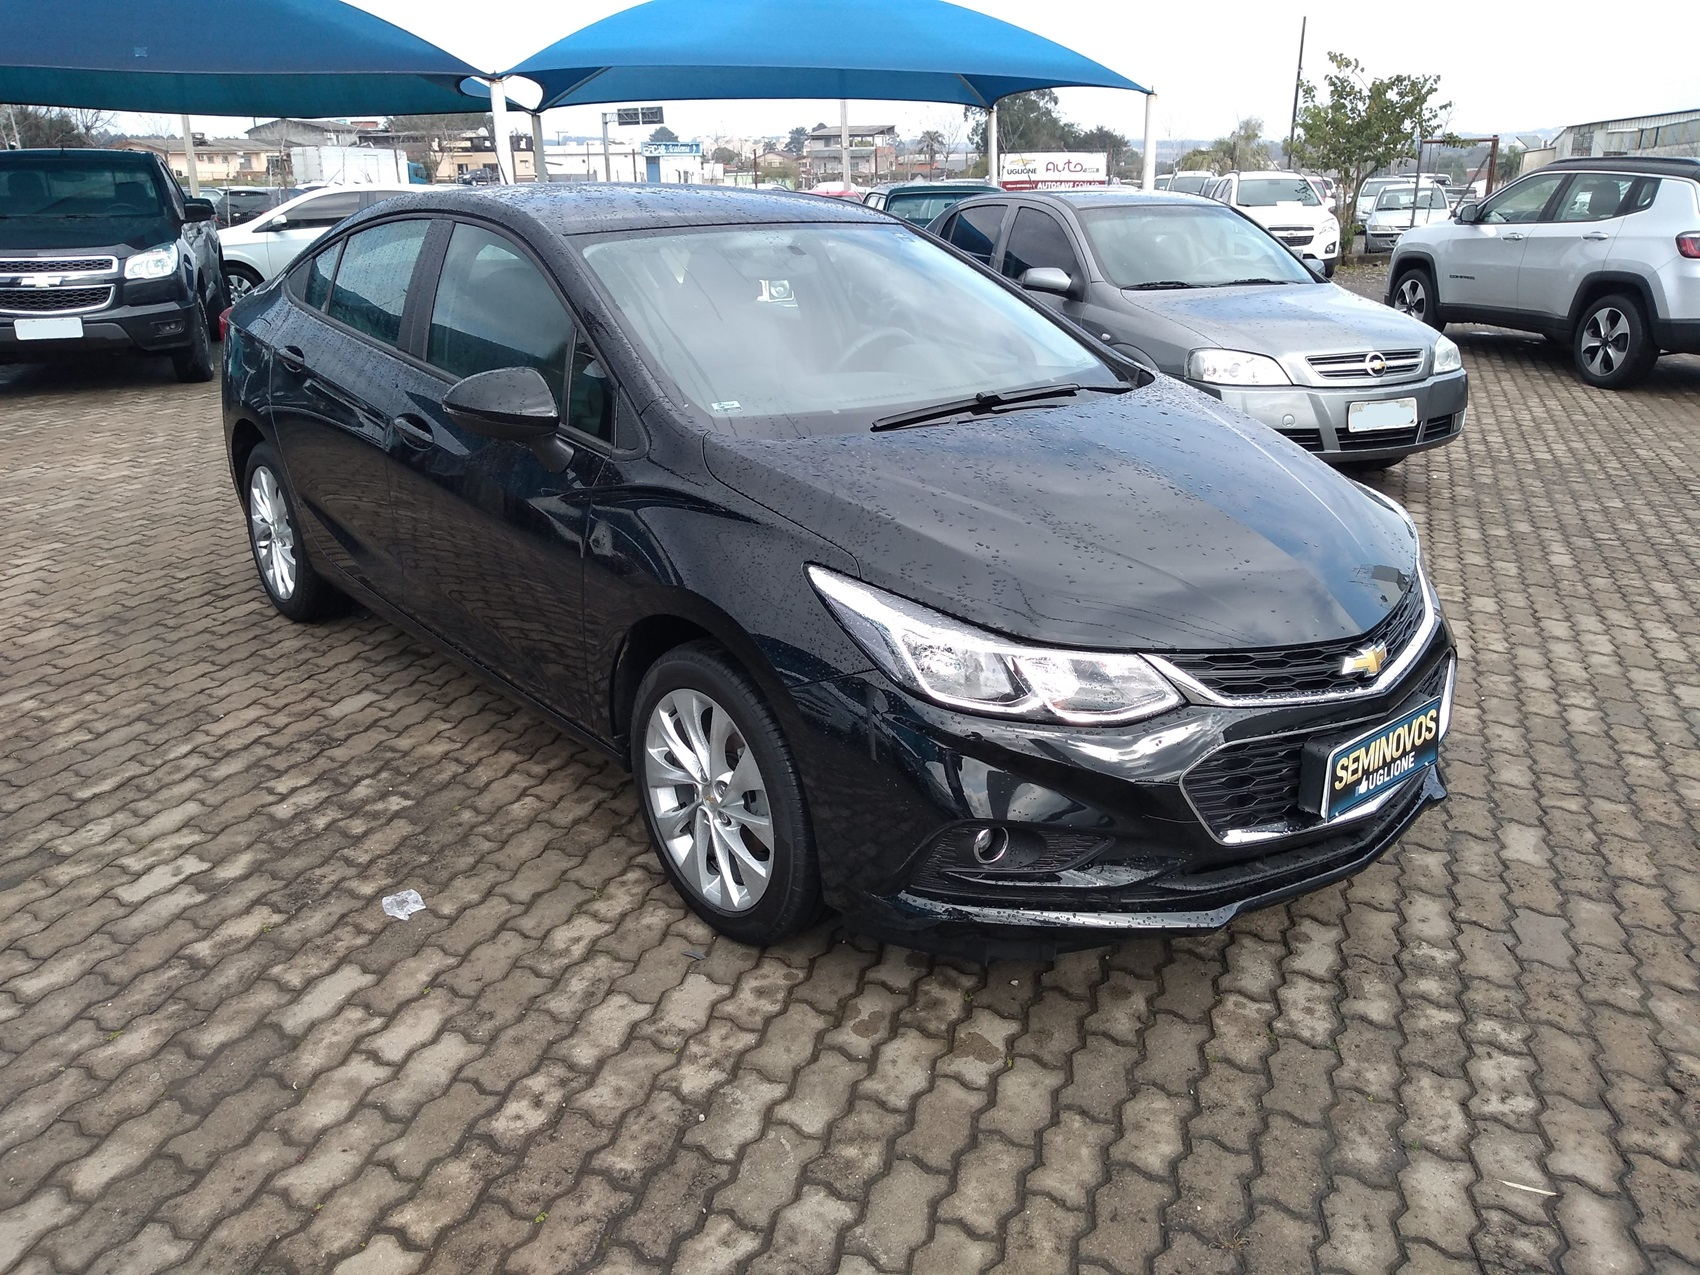 CHEVROLET CRUZE LT TURBO . 1.4 2017